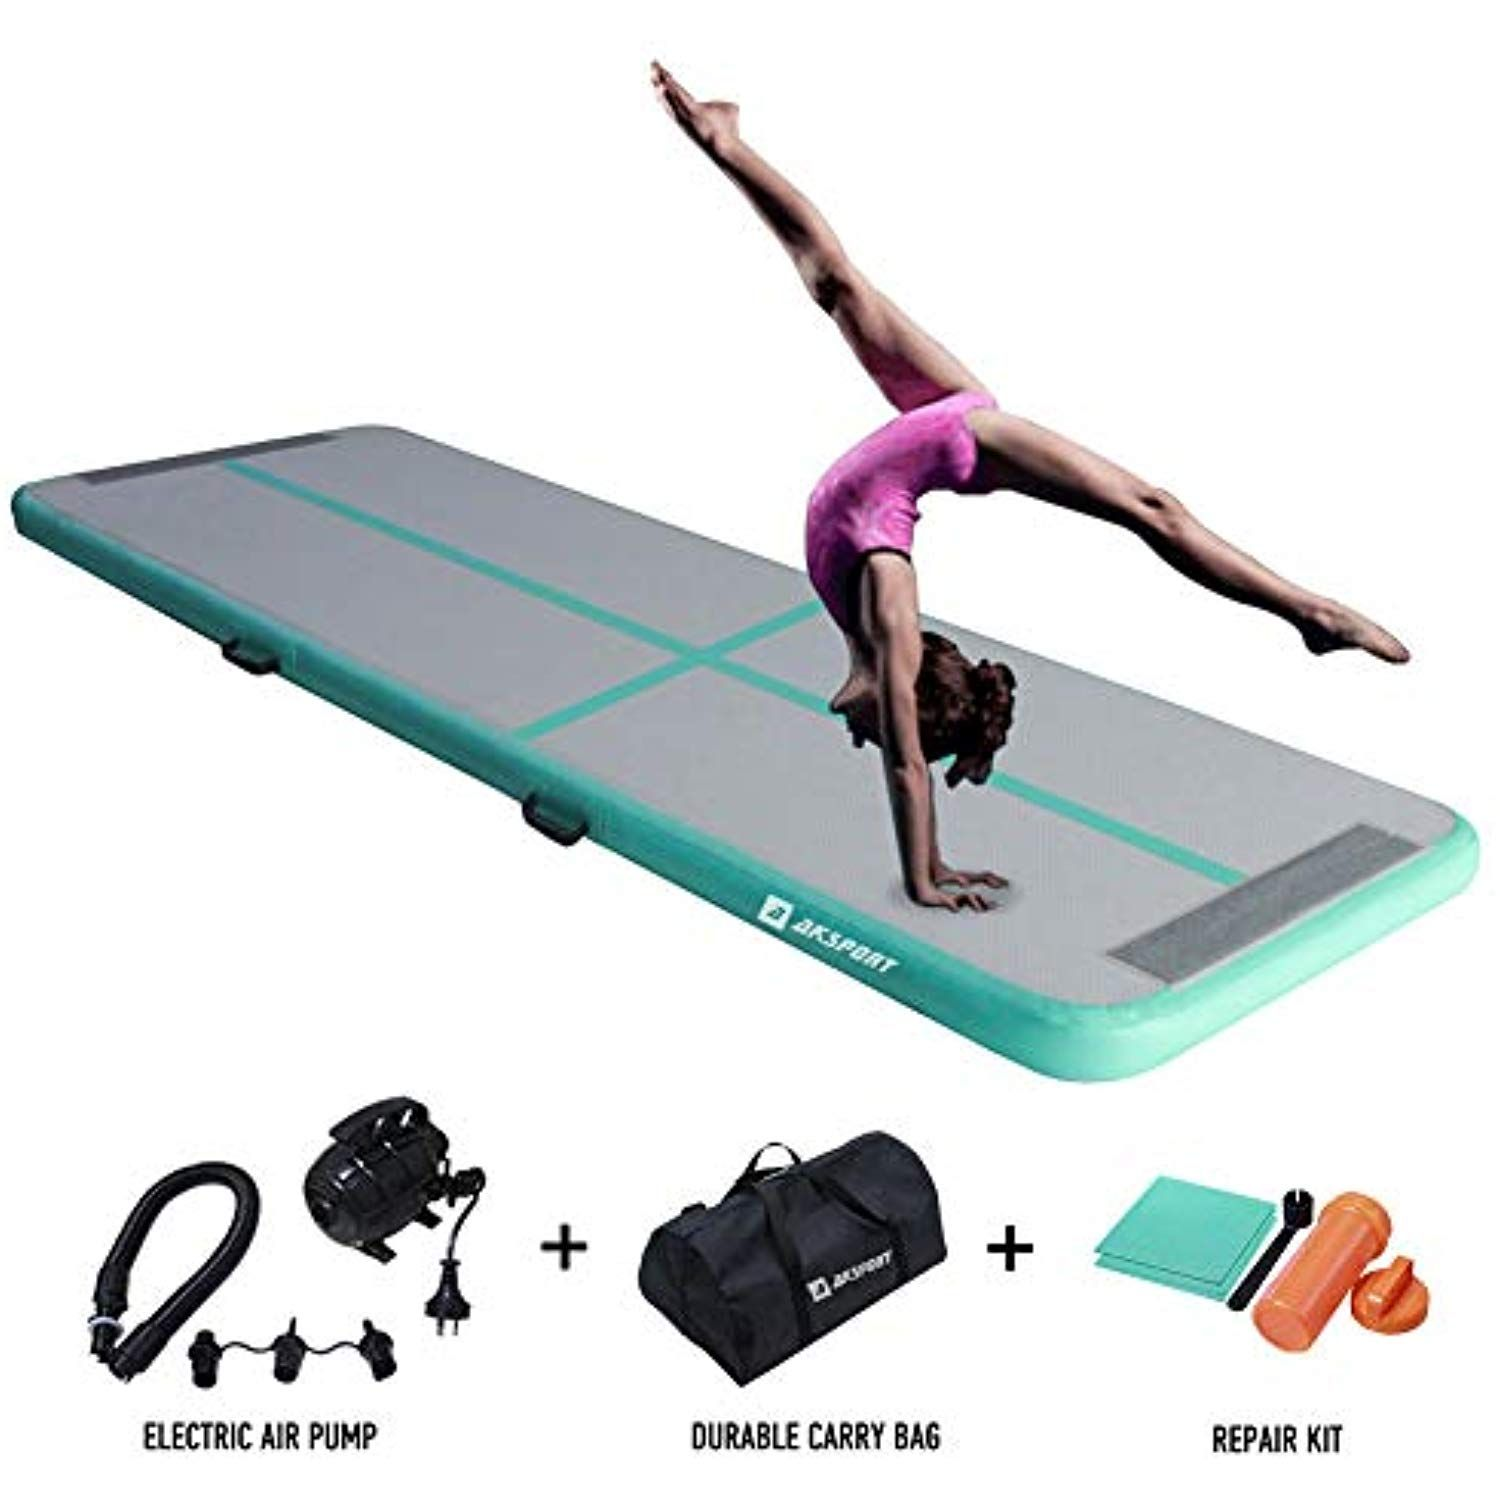 Aksport 10ft Air Track Tumbling Mat For Gymnastics Inflatable Airtrack Floor Mats With Electric Air Pump For Home Use Cheerlead Tumble Mats Sports Cheerleading